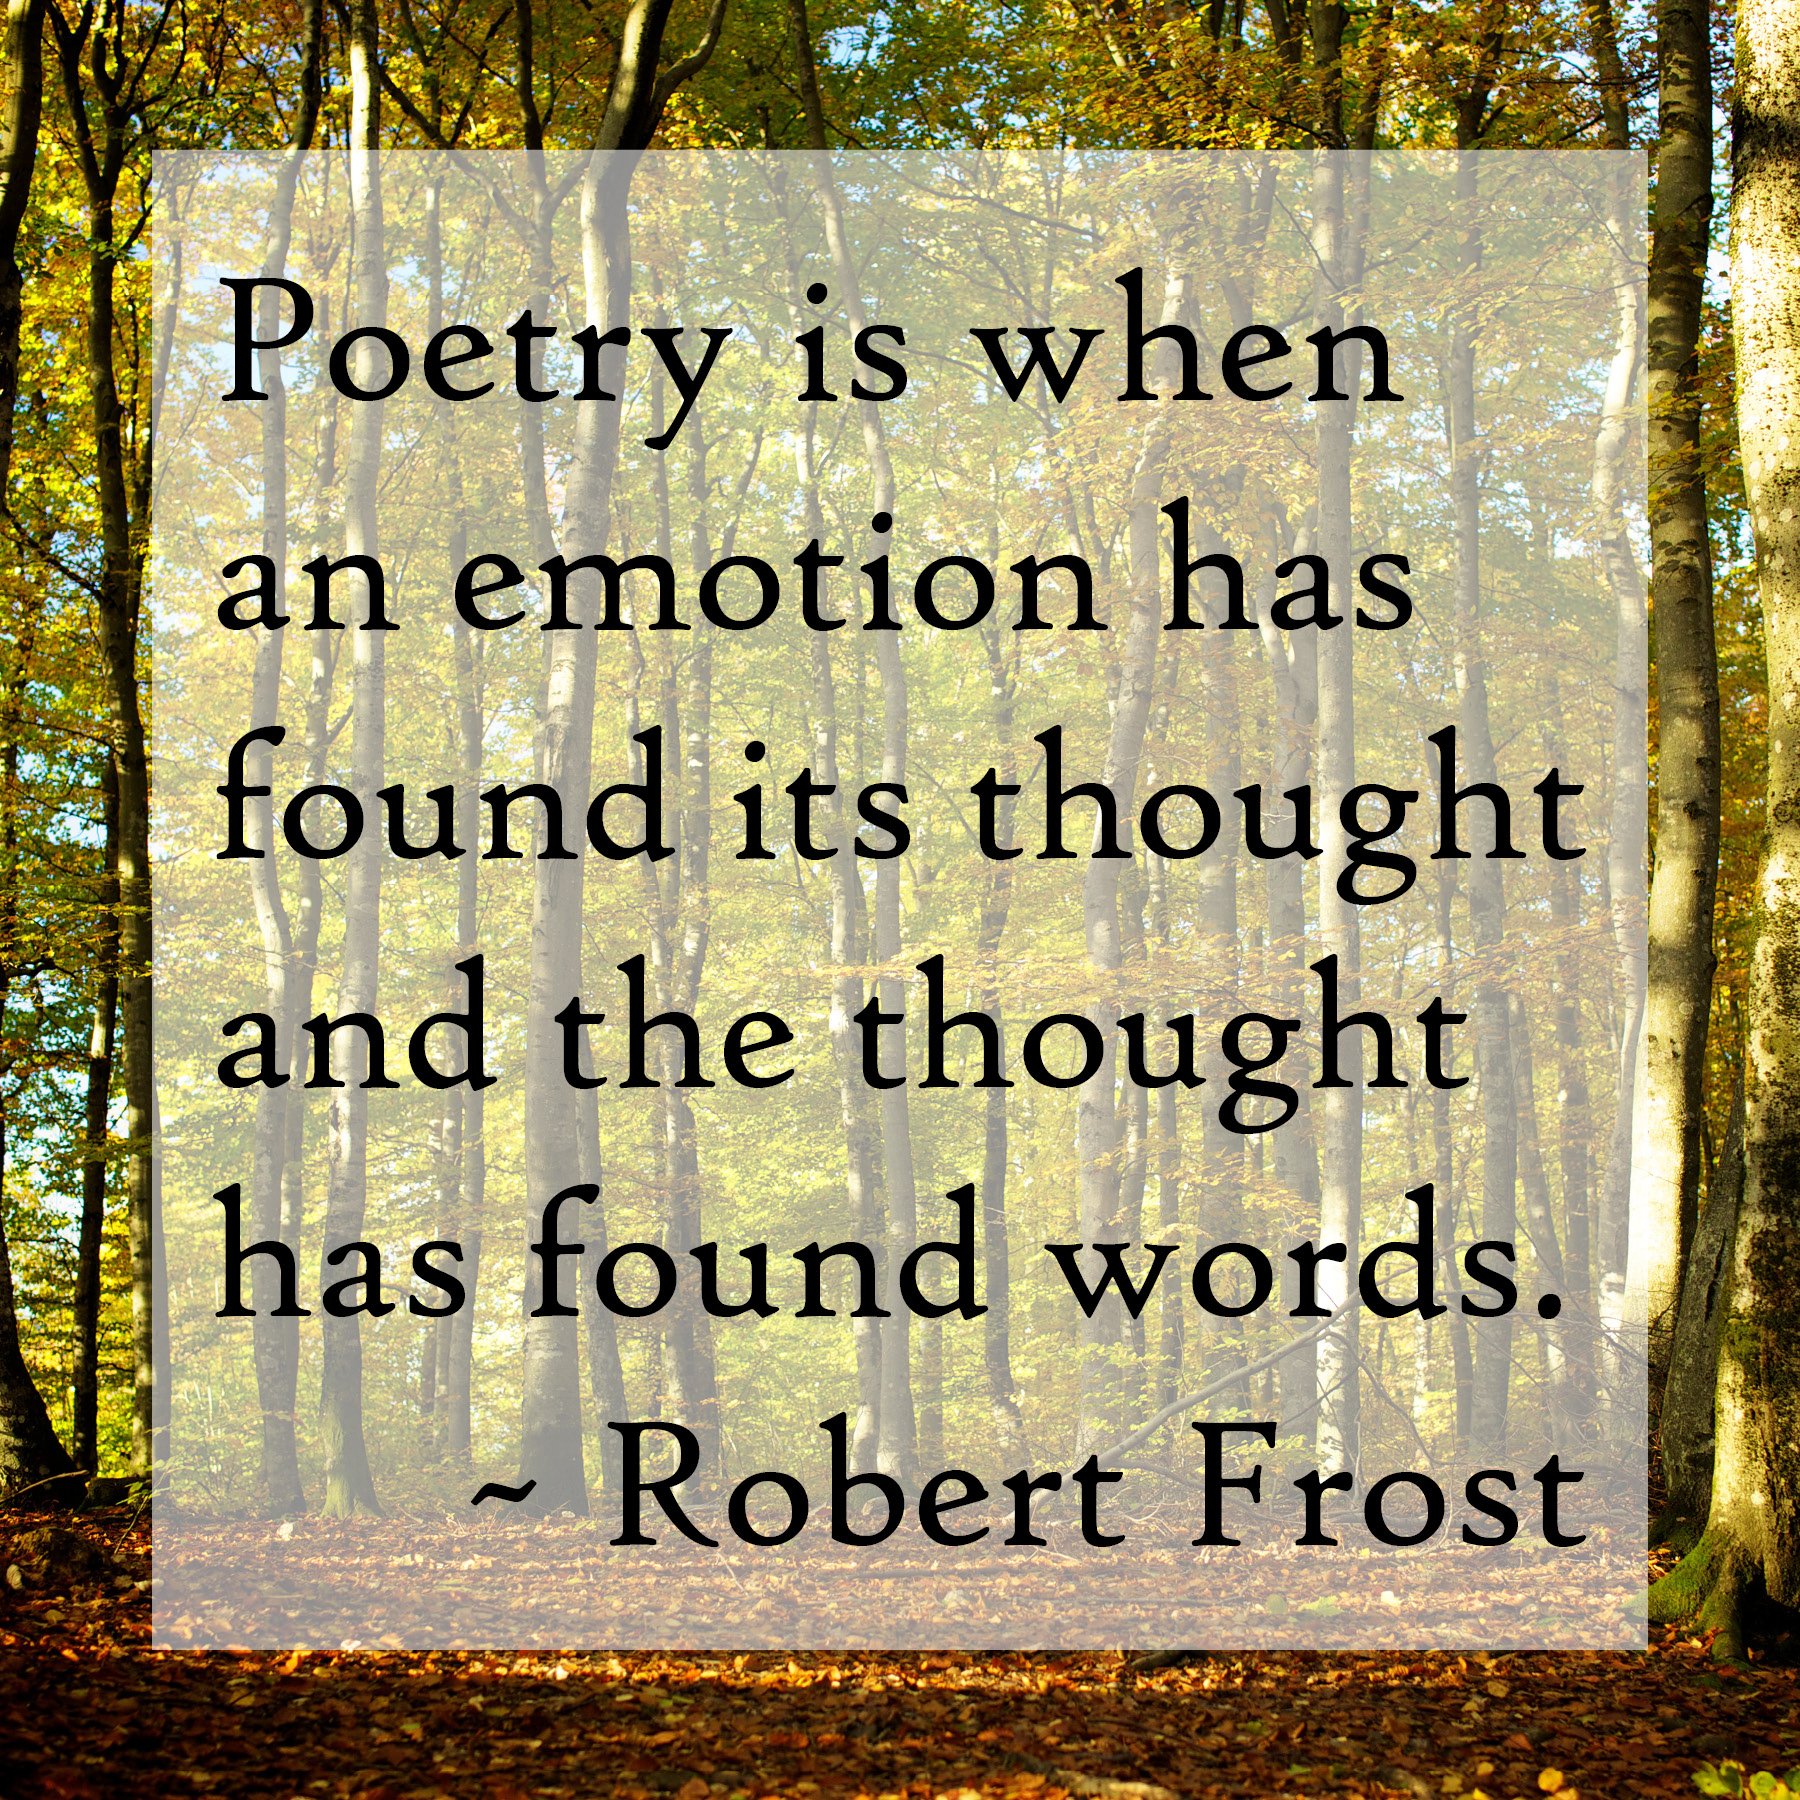 the life and inspirations of robert frost The best poems by robert frost 10 of the best robert frost poems everyone should read 'stopping by woods' was inspired by a real event in frost's life.